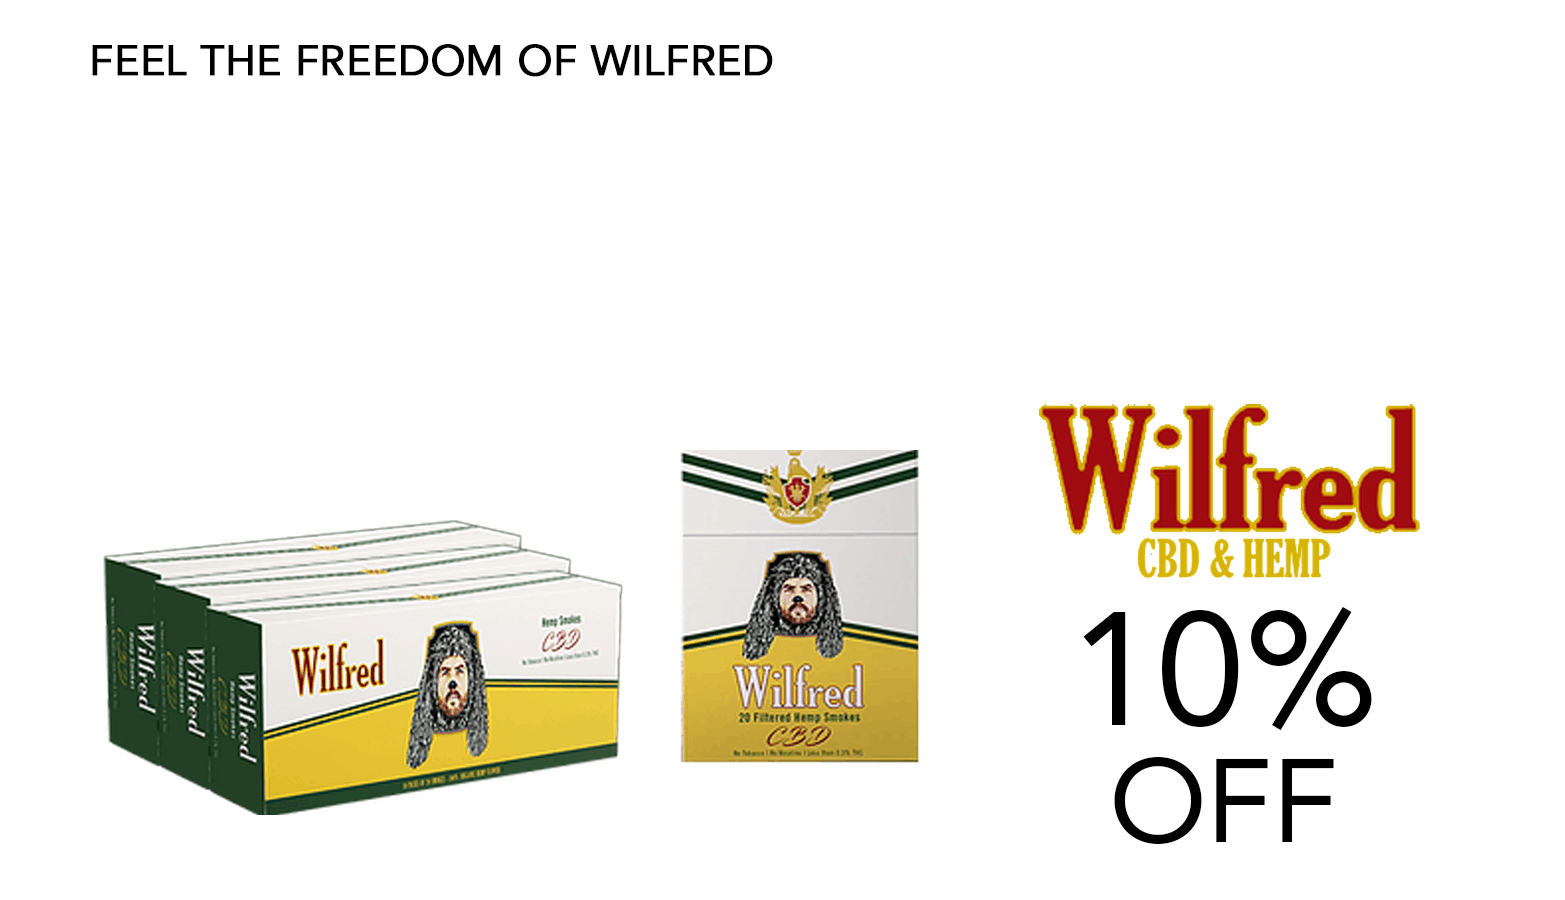 Wilfred CBD Coupon Code 10 Percent Offer Website